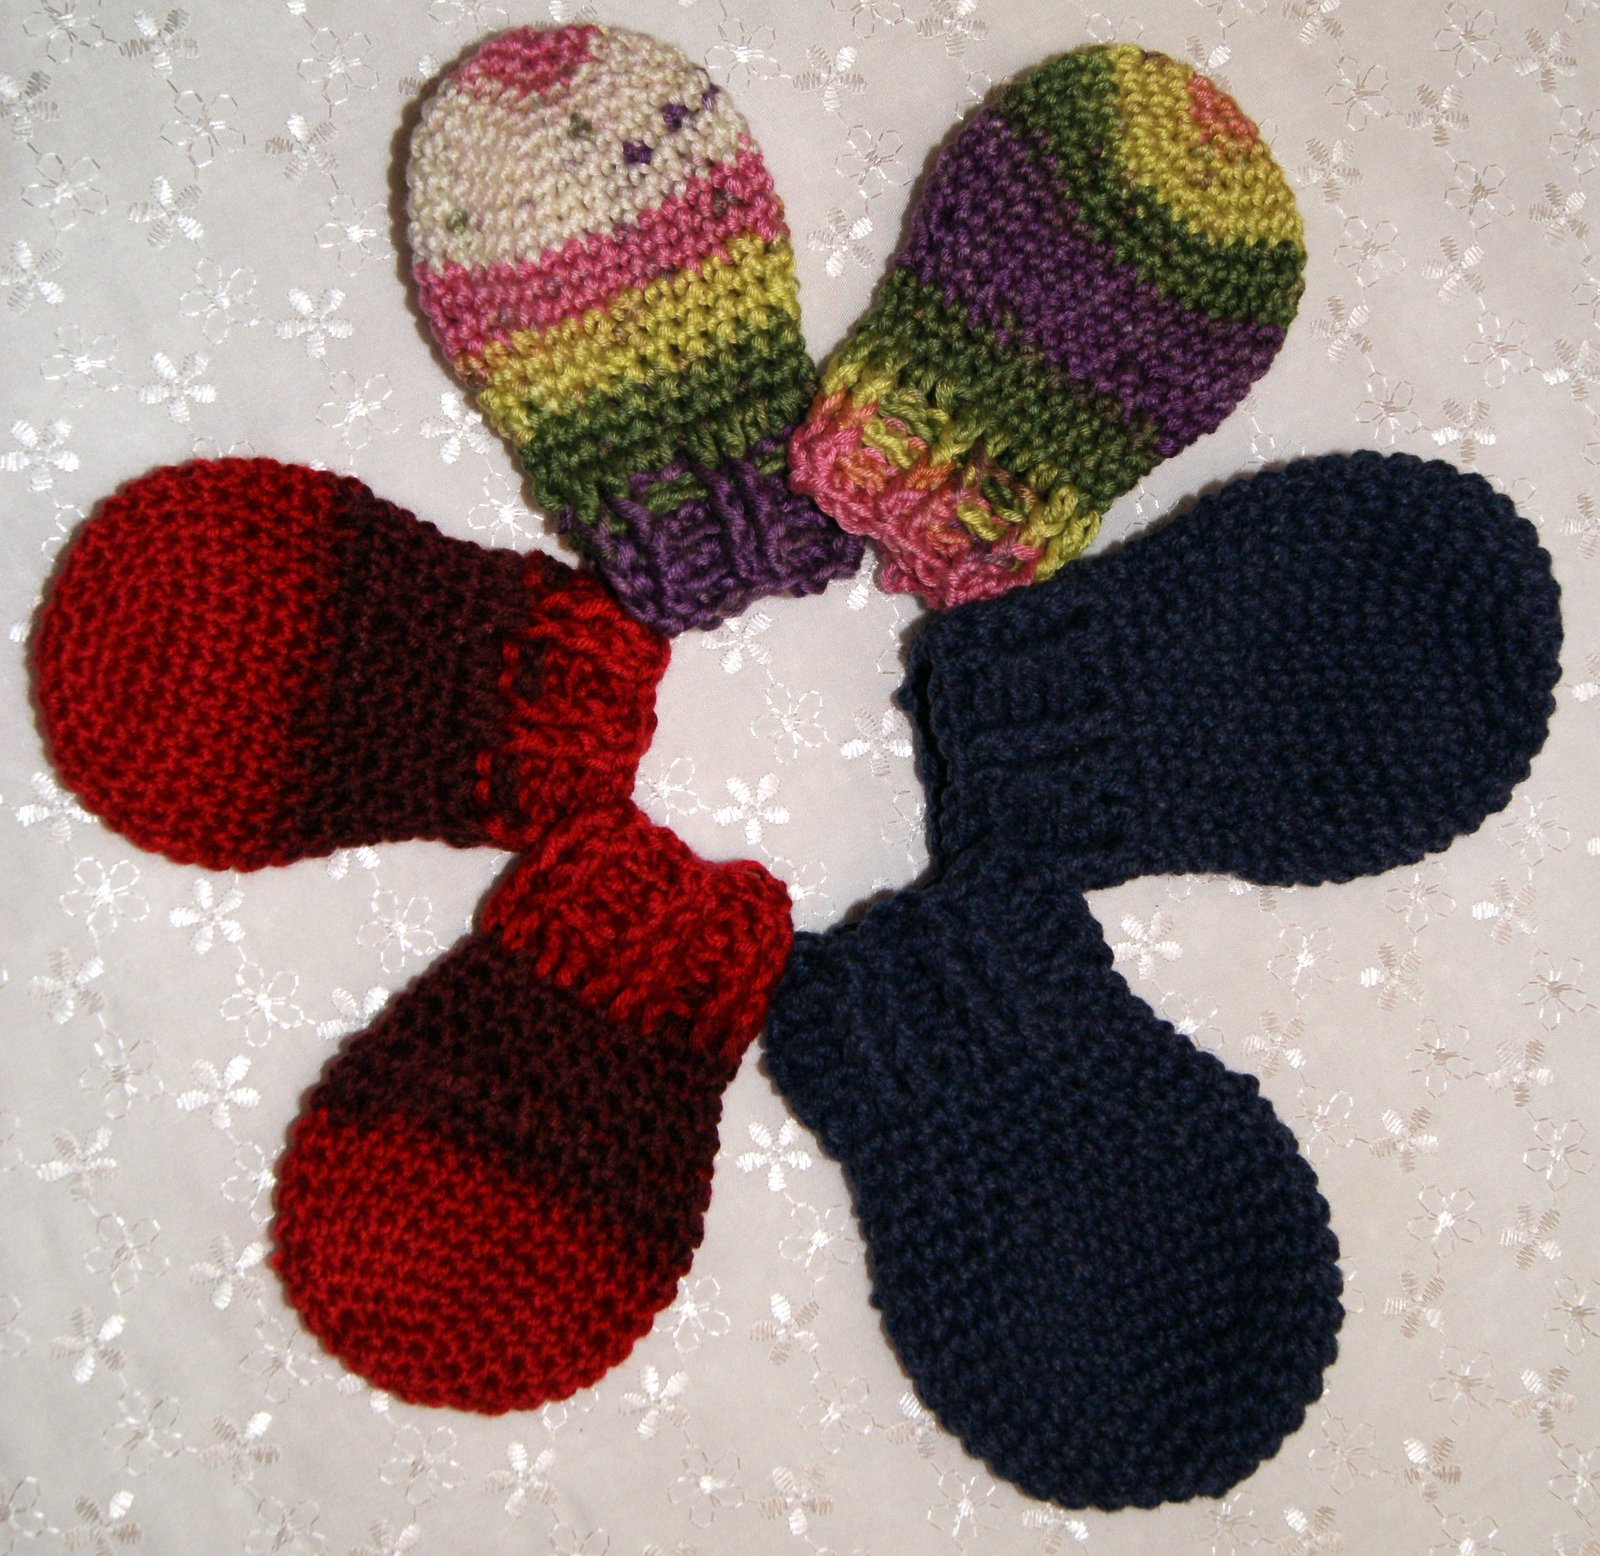 Free Crochet Pattern Thumbless Mittens : Crochet Thumbless Mitten Pattern Stitch4eveR